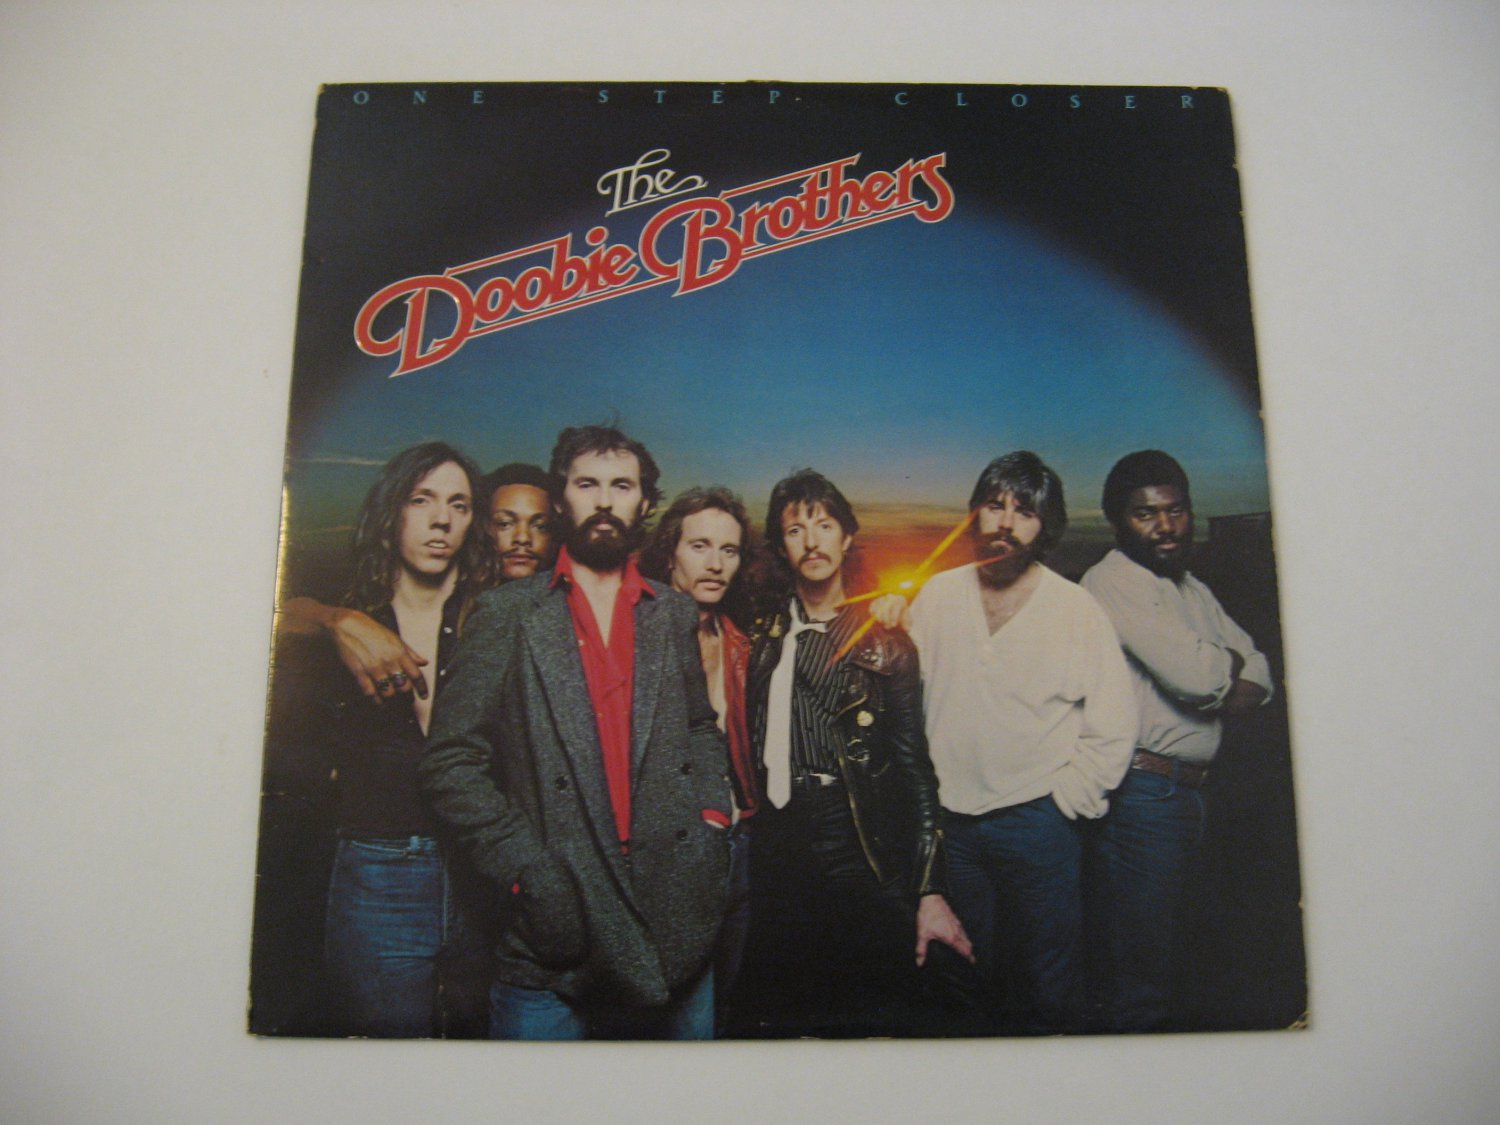 The Doobie Brothers - One Step Closer - 1980 (Records)